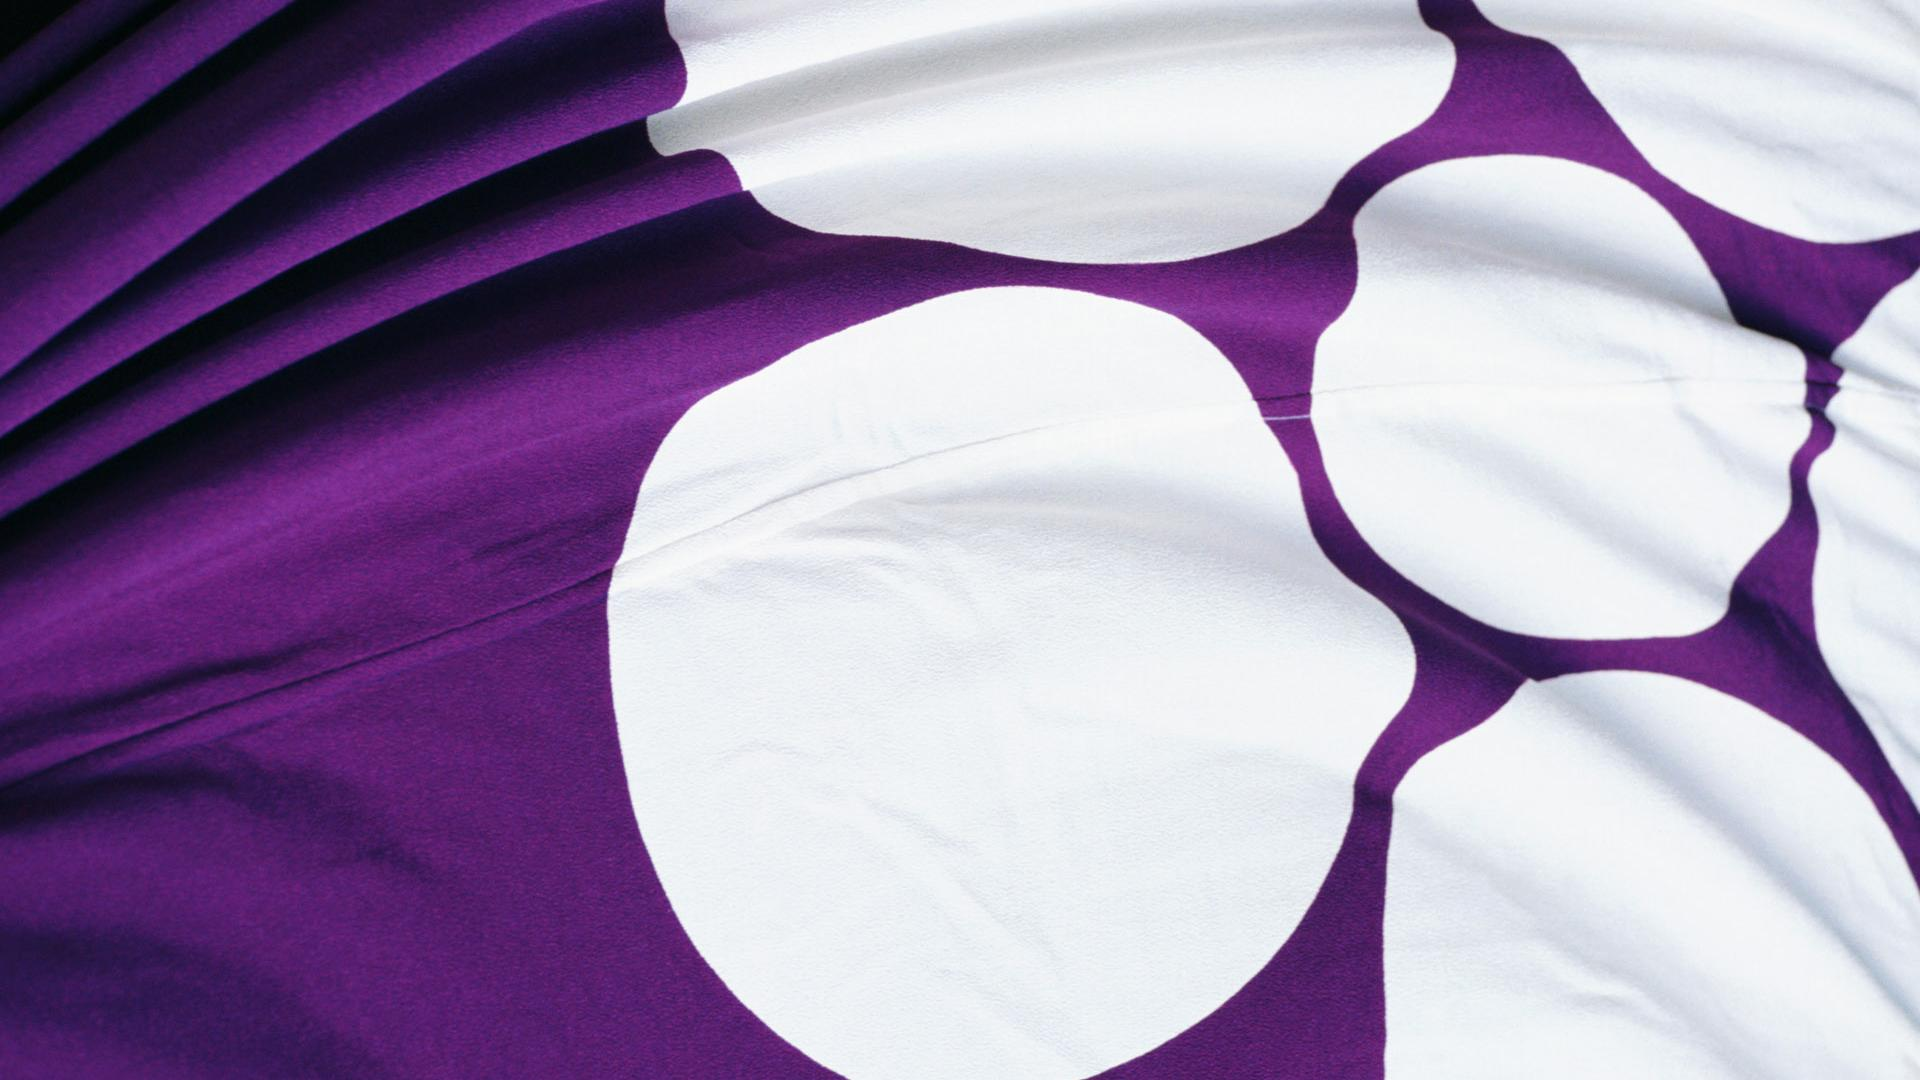 [66+] Purple And White Backgrounds on WallpaperSafari